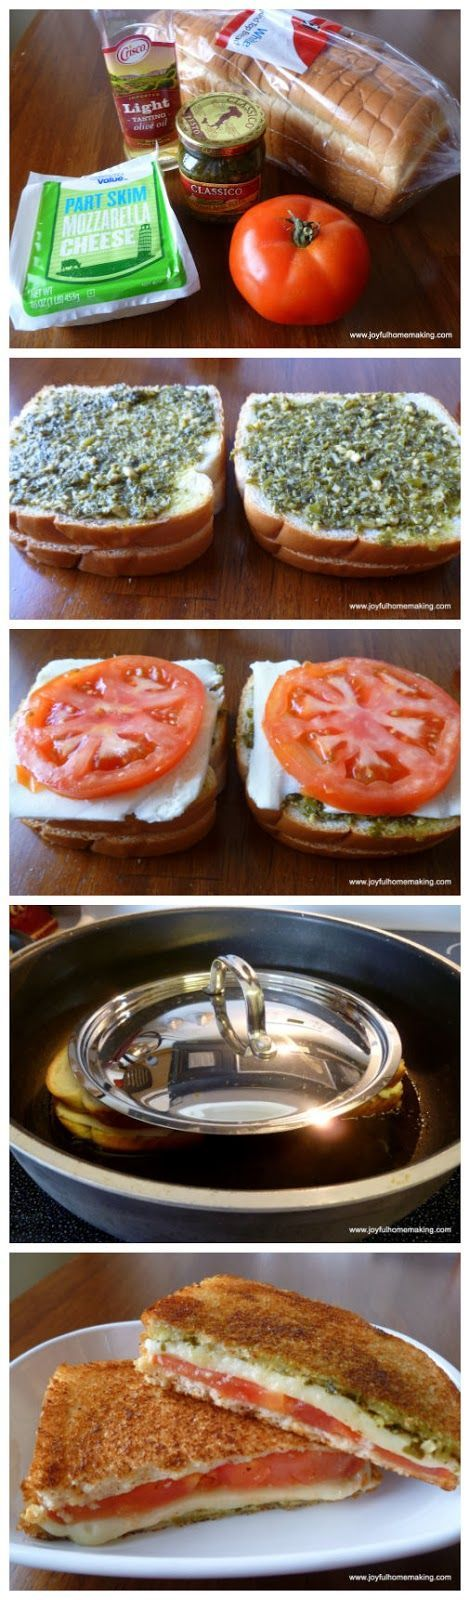 Grilled cheese tomato and pesto sandwich YUM